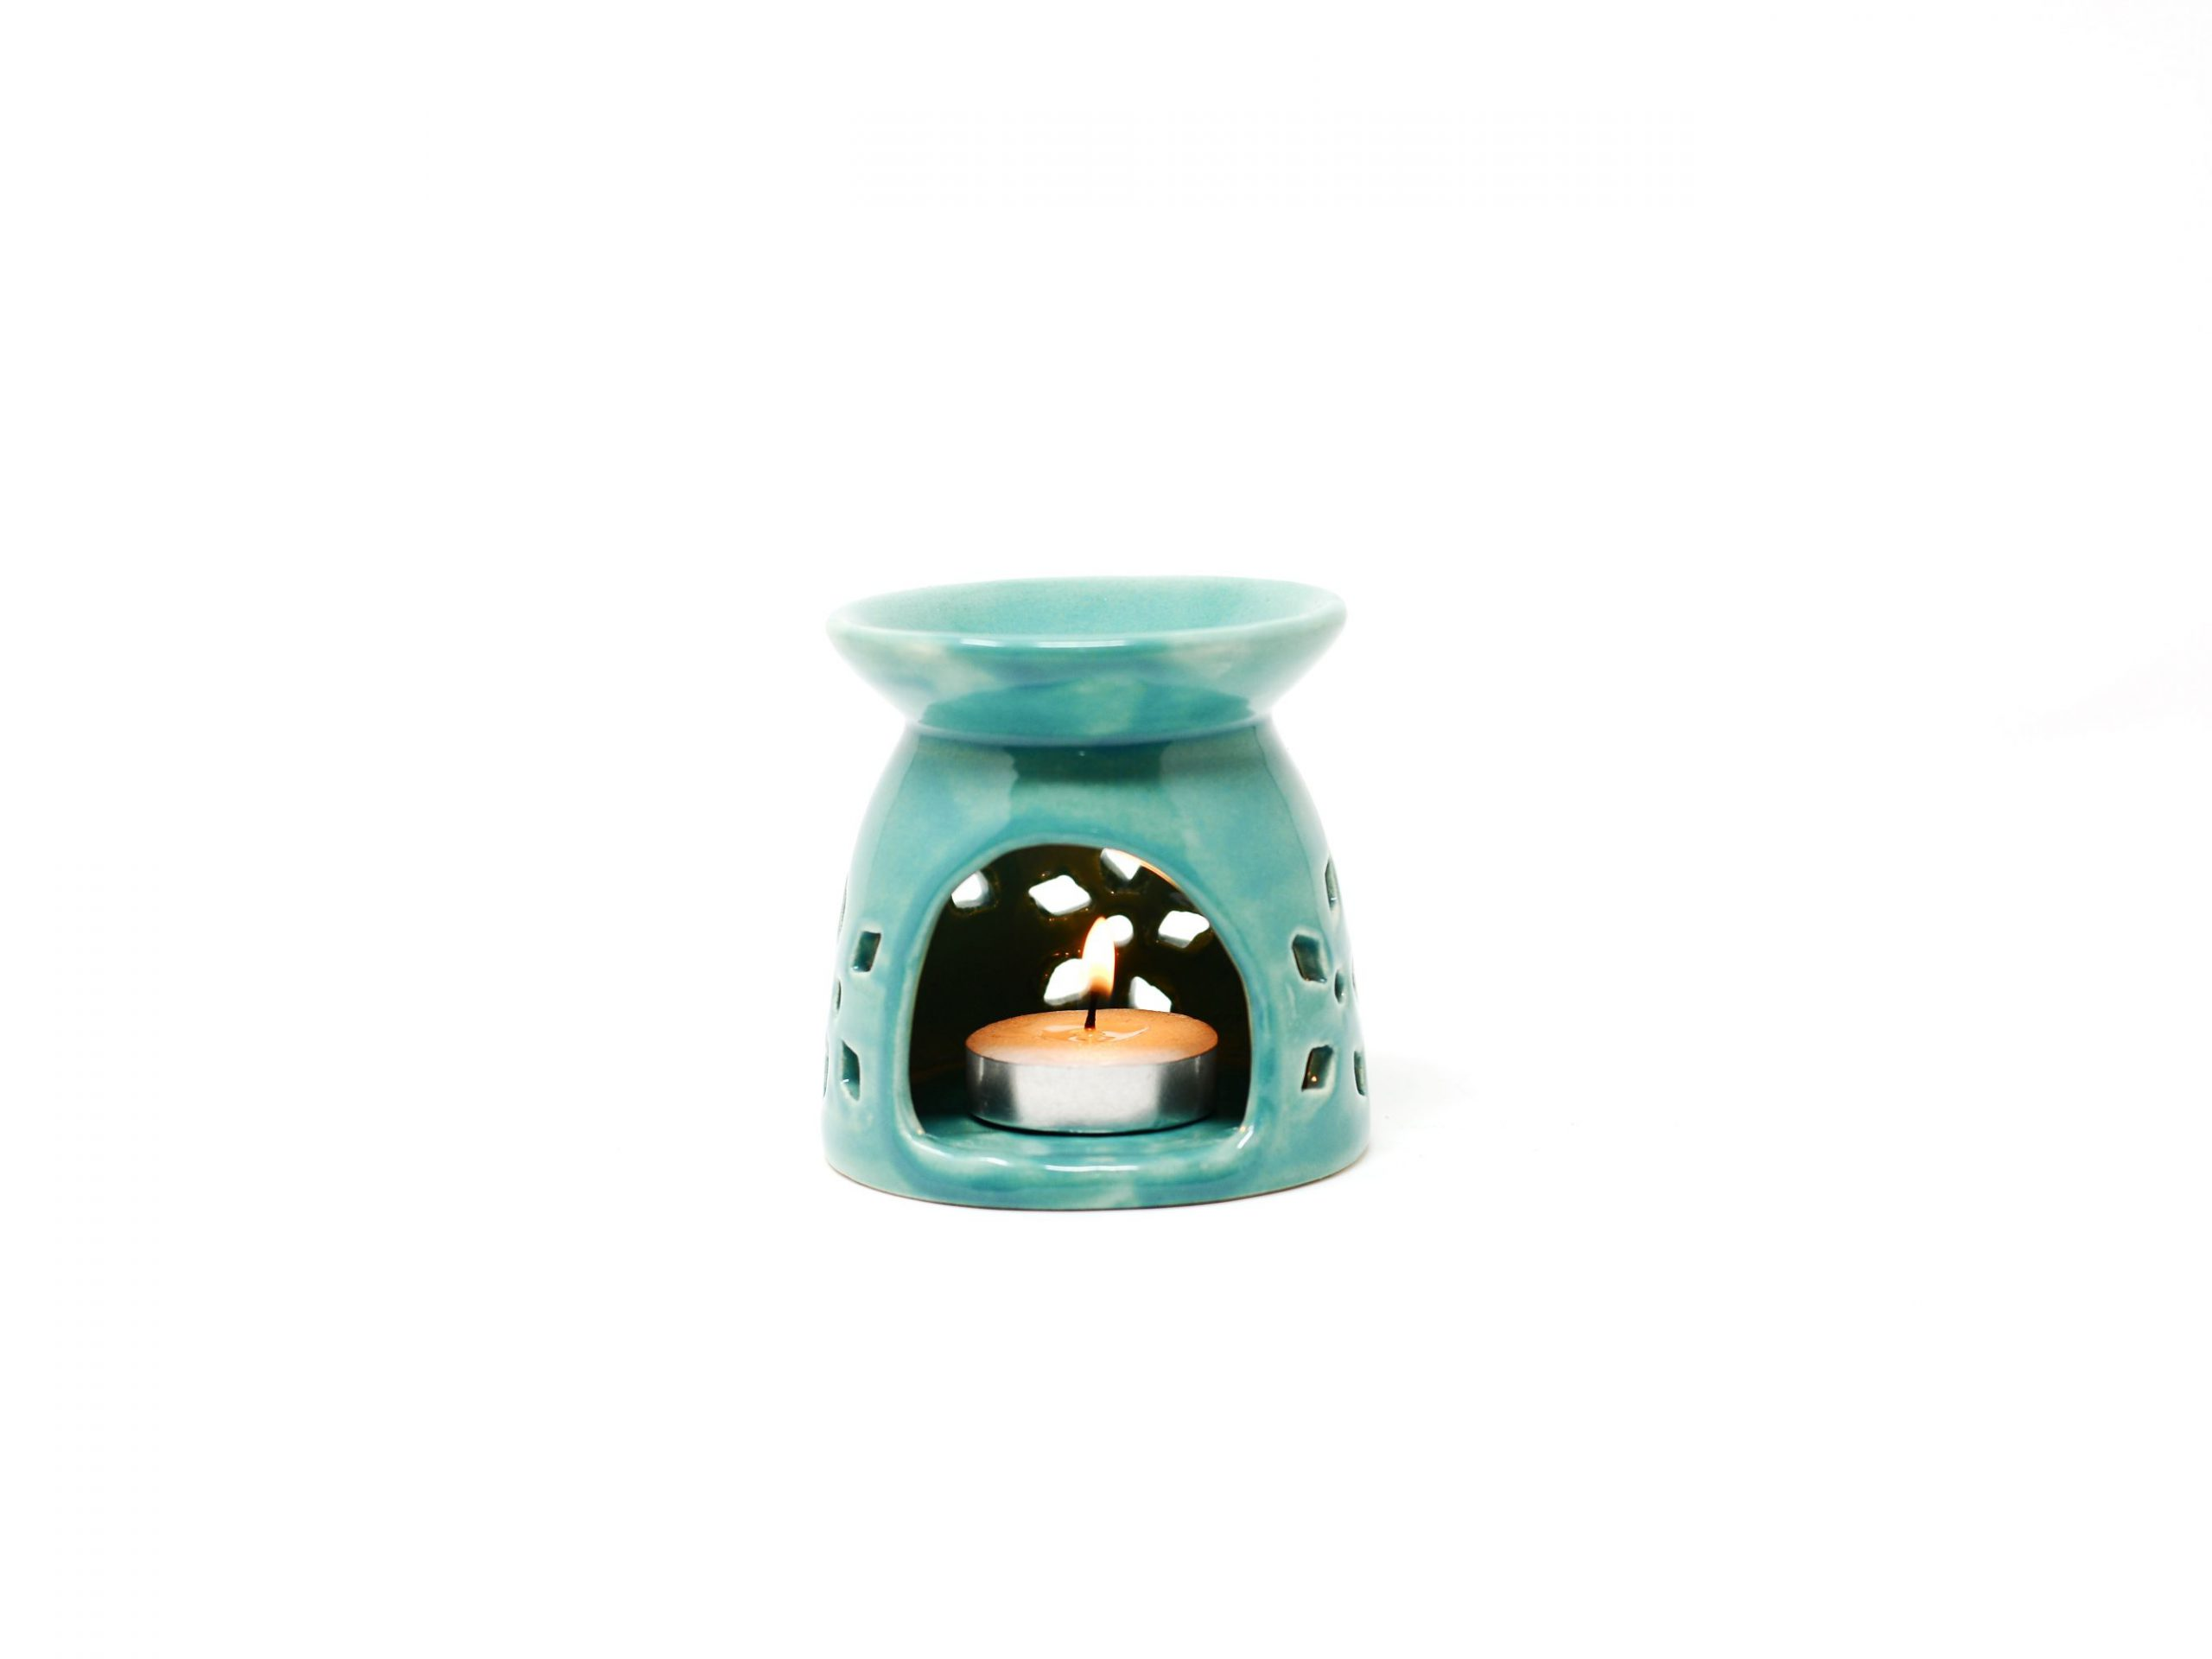 Ceramic Oil Diffuser Fragrance Lamps (Turquoise)